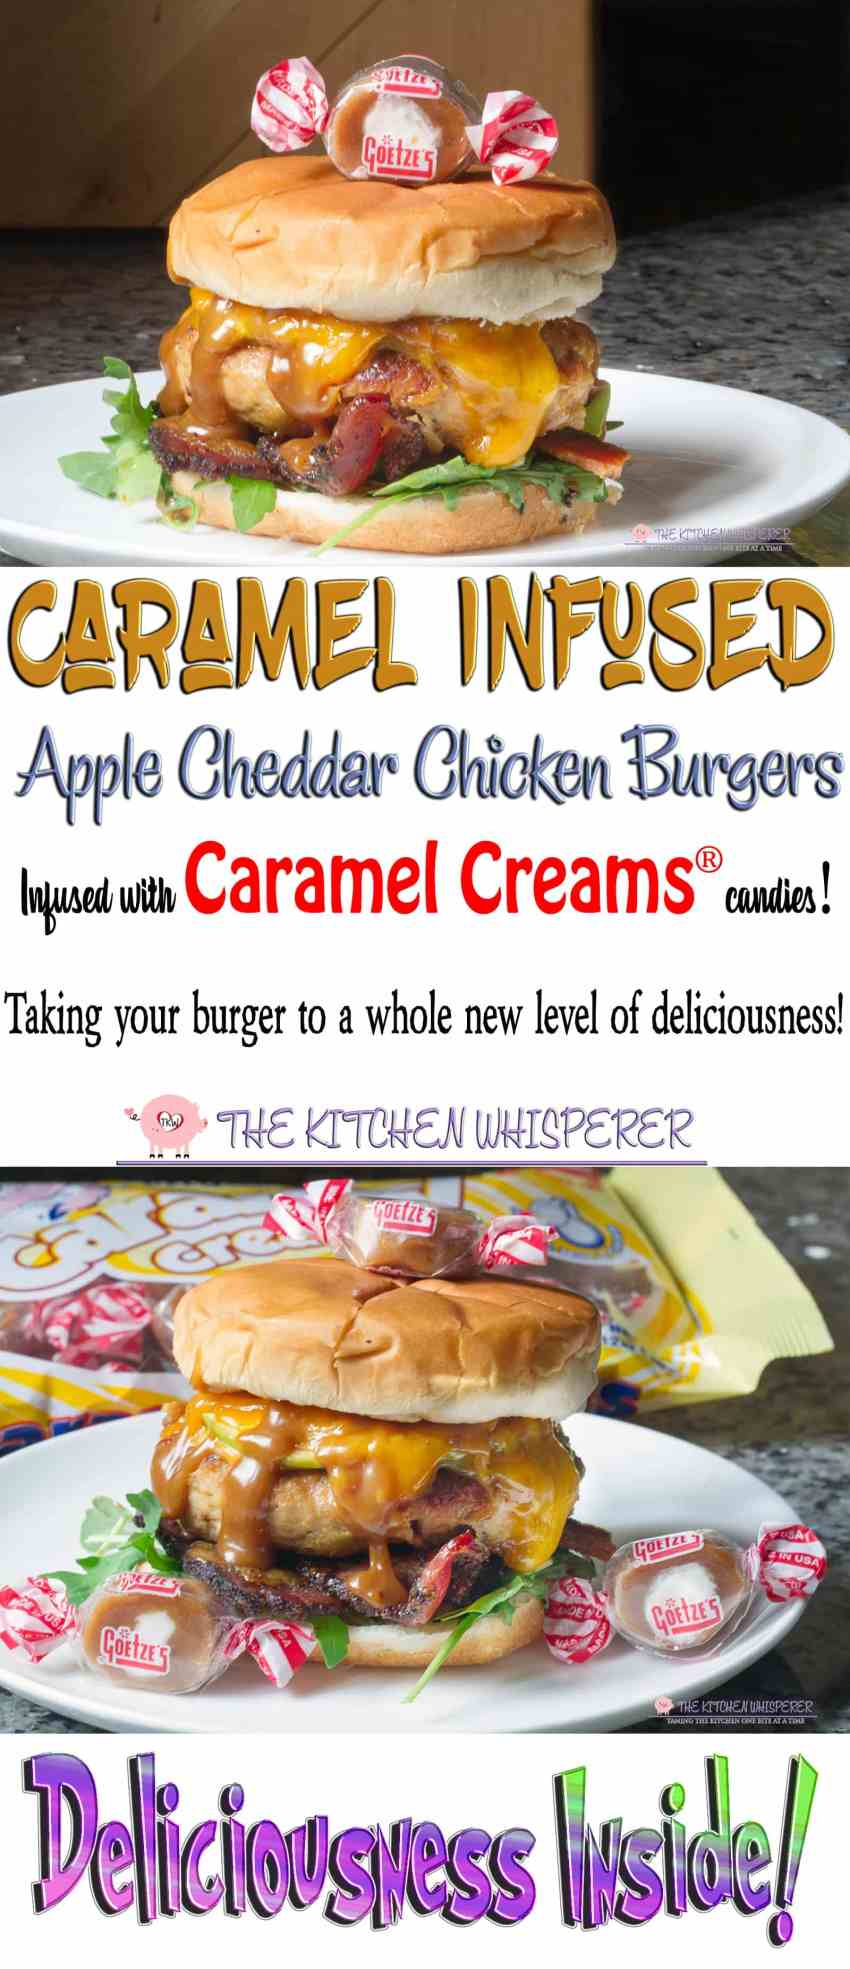 Carmel Infused Apple Cheddar Chicken Burgers made with Caramel Creams®